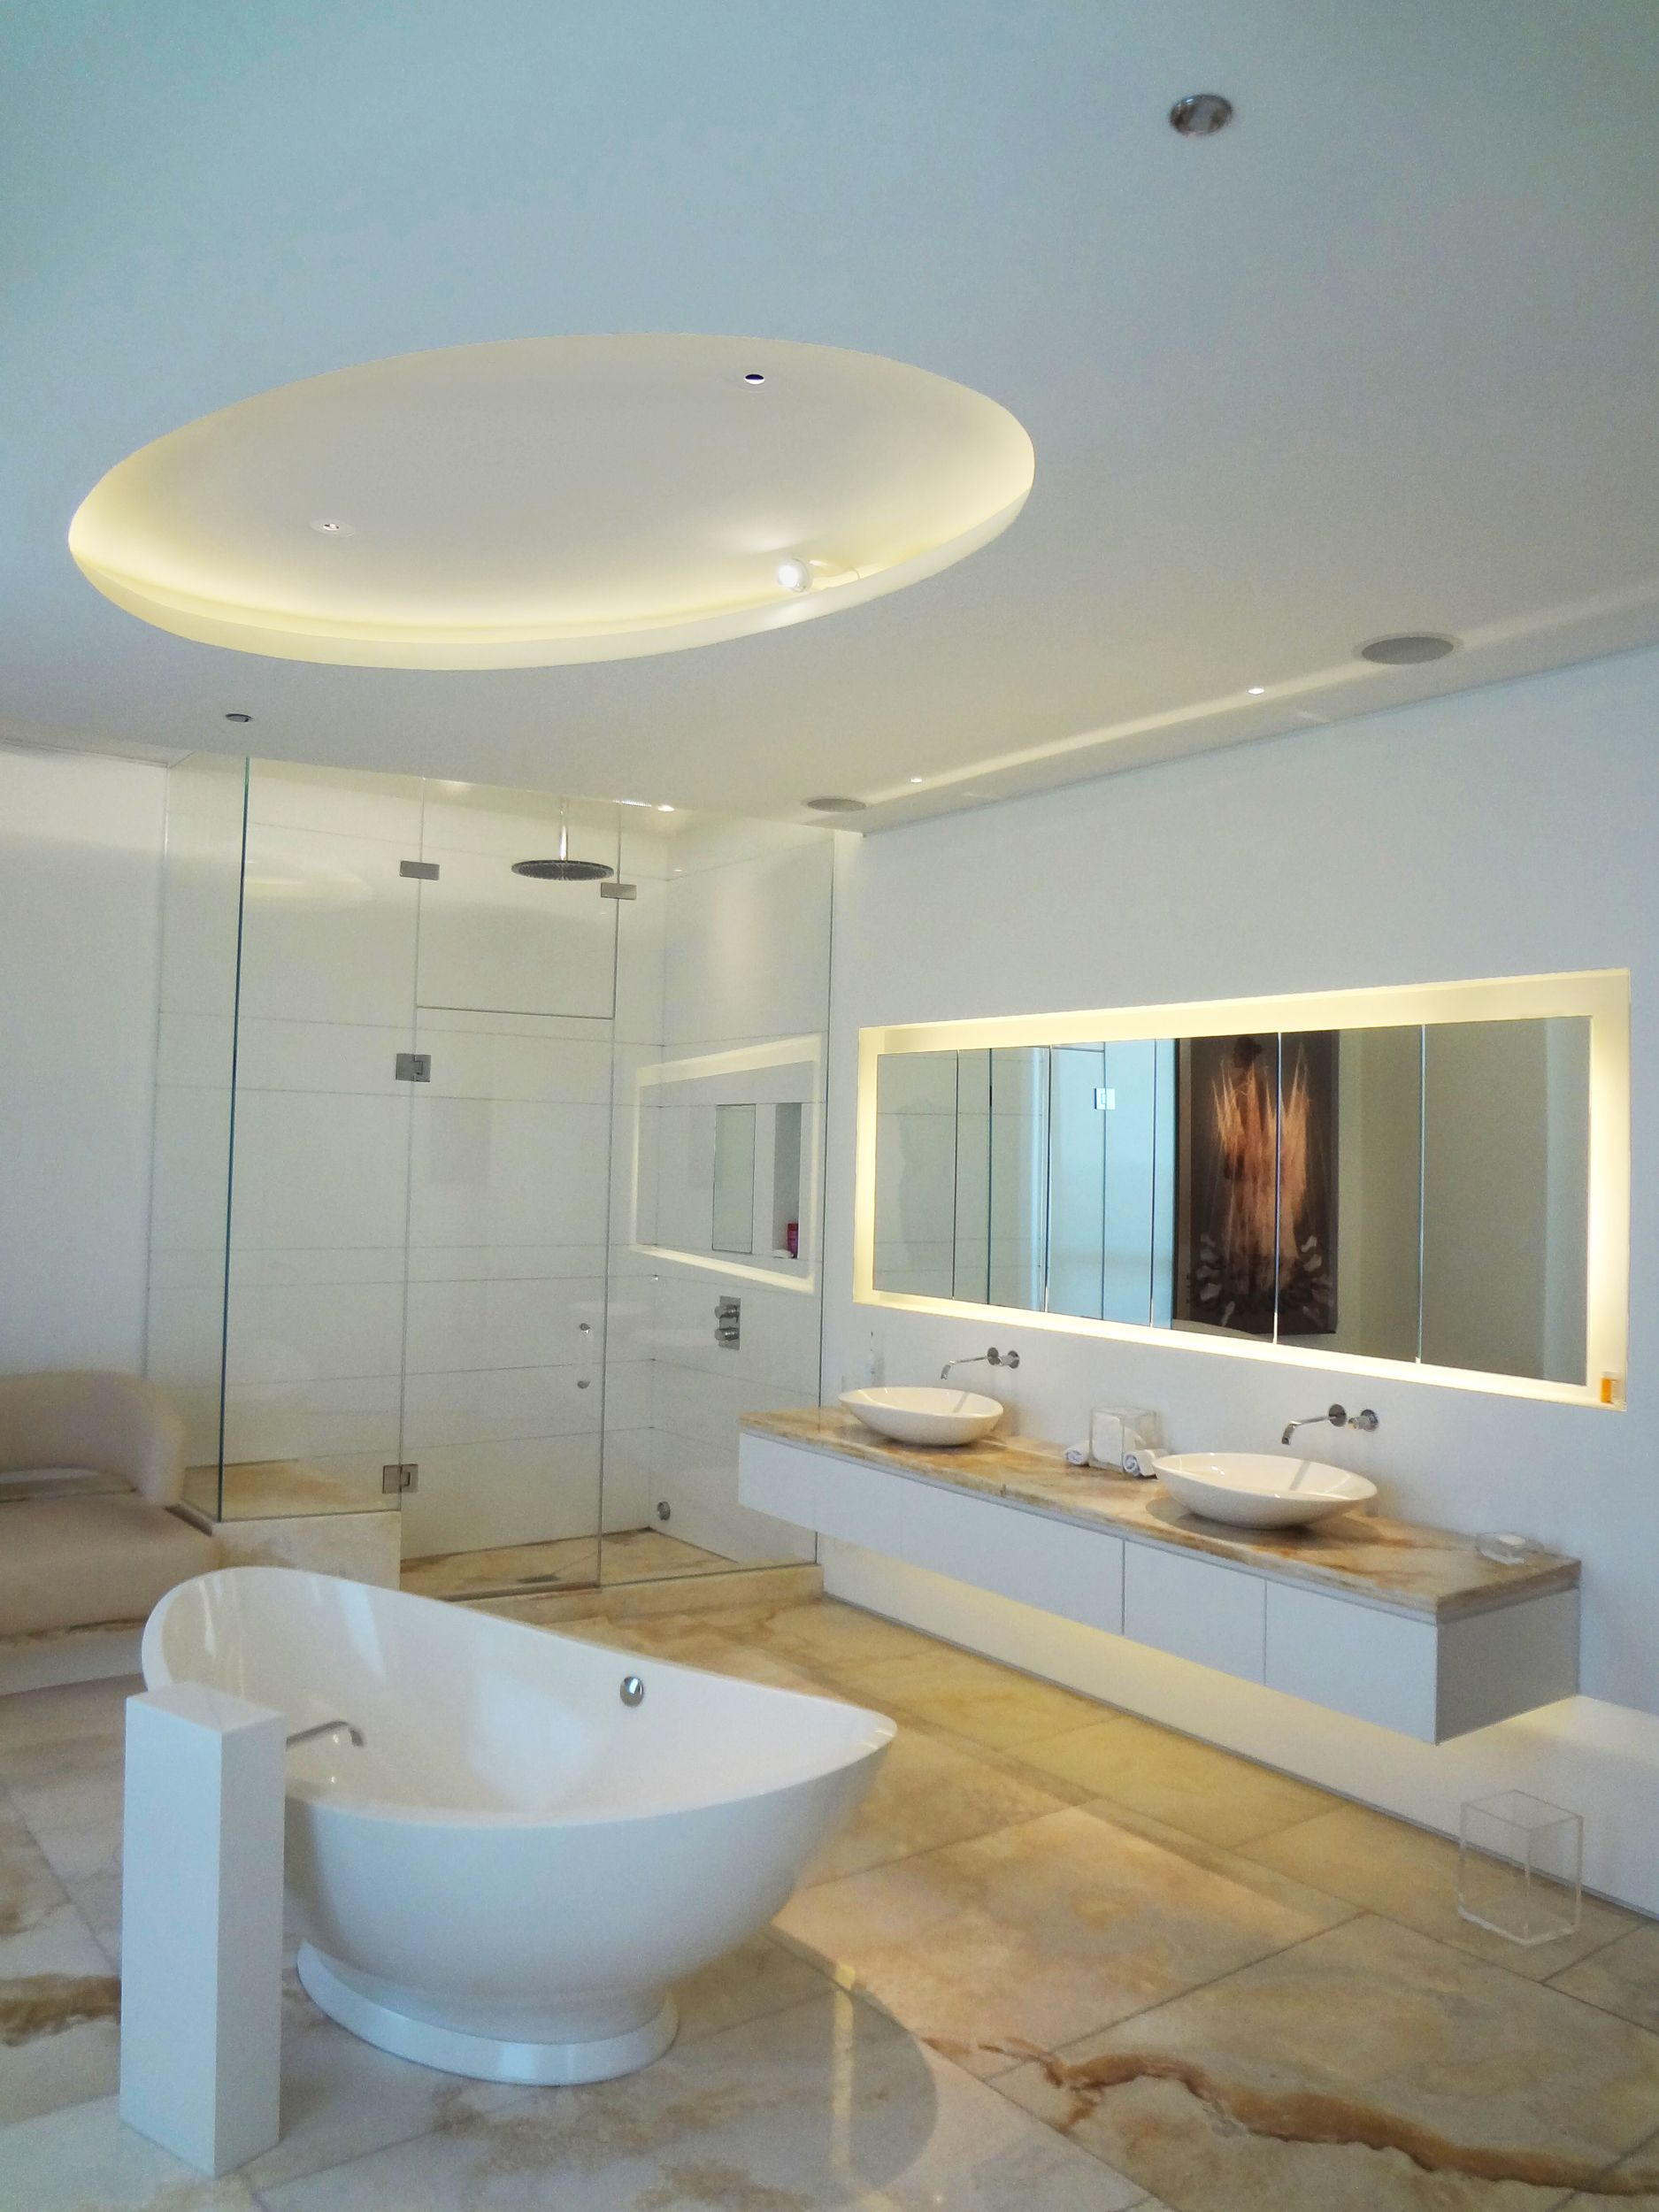 bathroom mirror luxury vanity ideas img over com eyagci modern fixtures light amazing original lighting picture